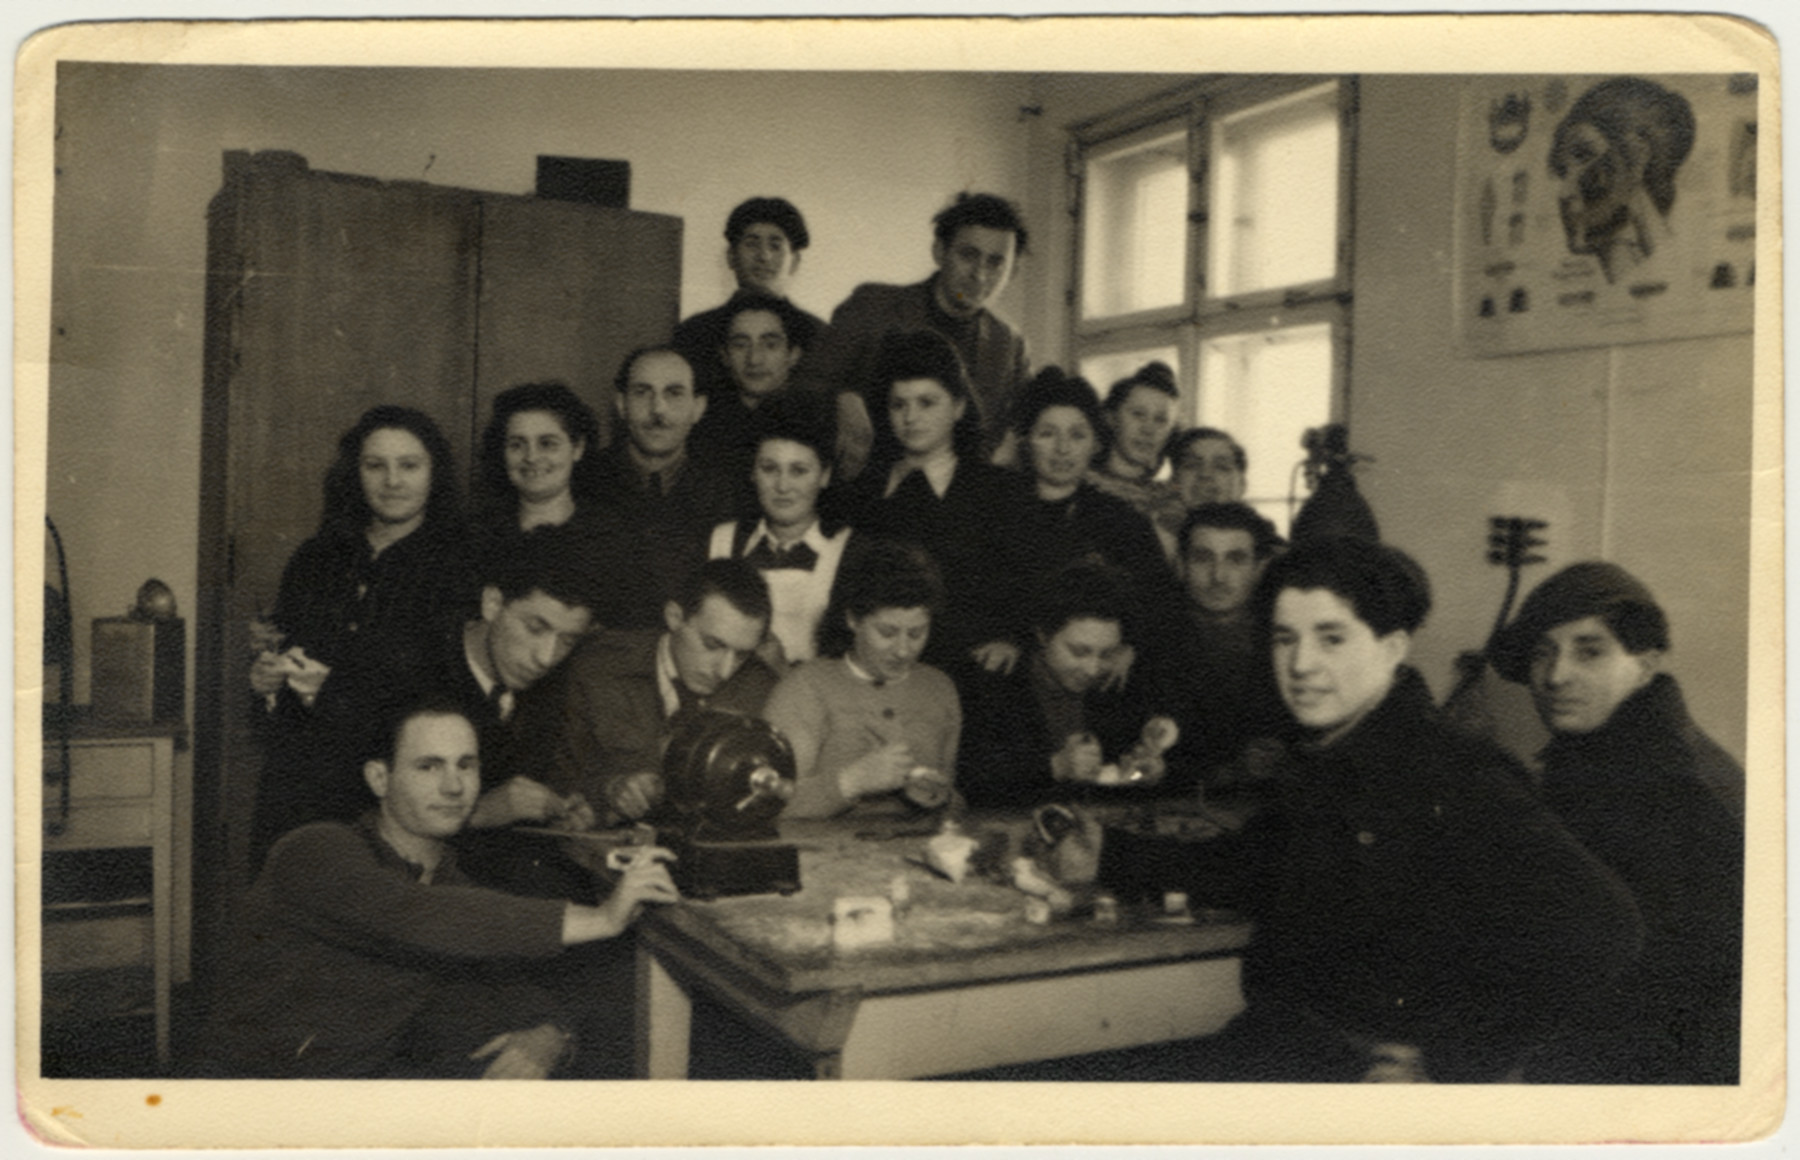 Men and women gather by a wooden work table in the ORT dental technician school in the Bergen-Belsen displaced persons camp.